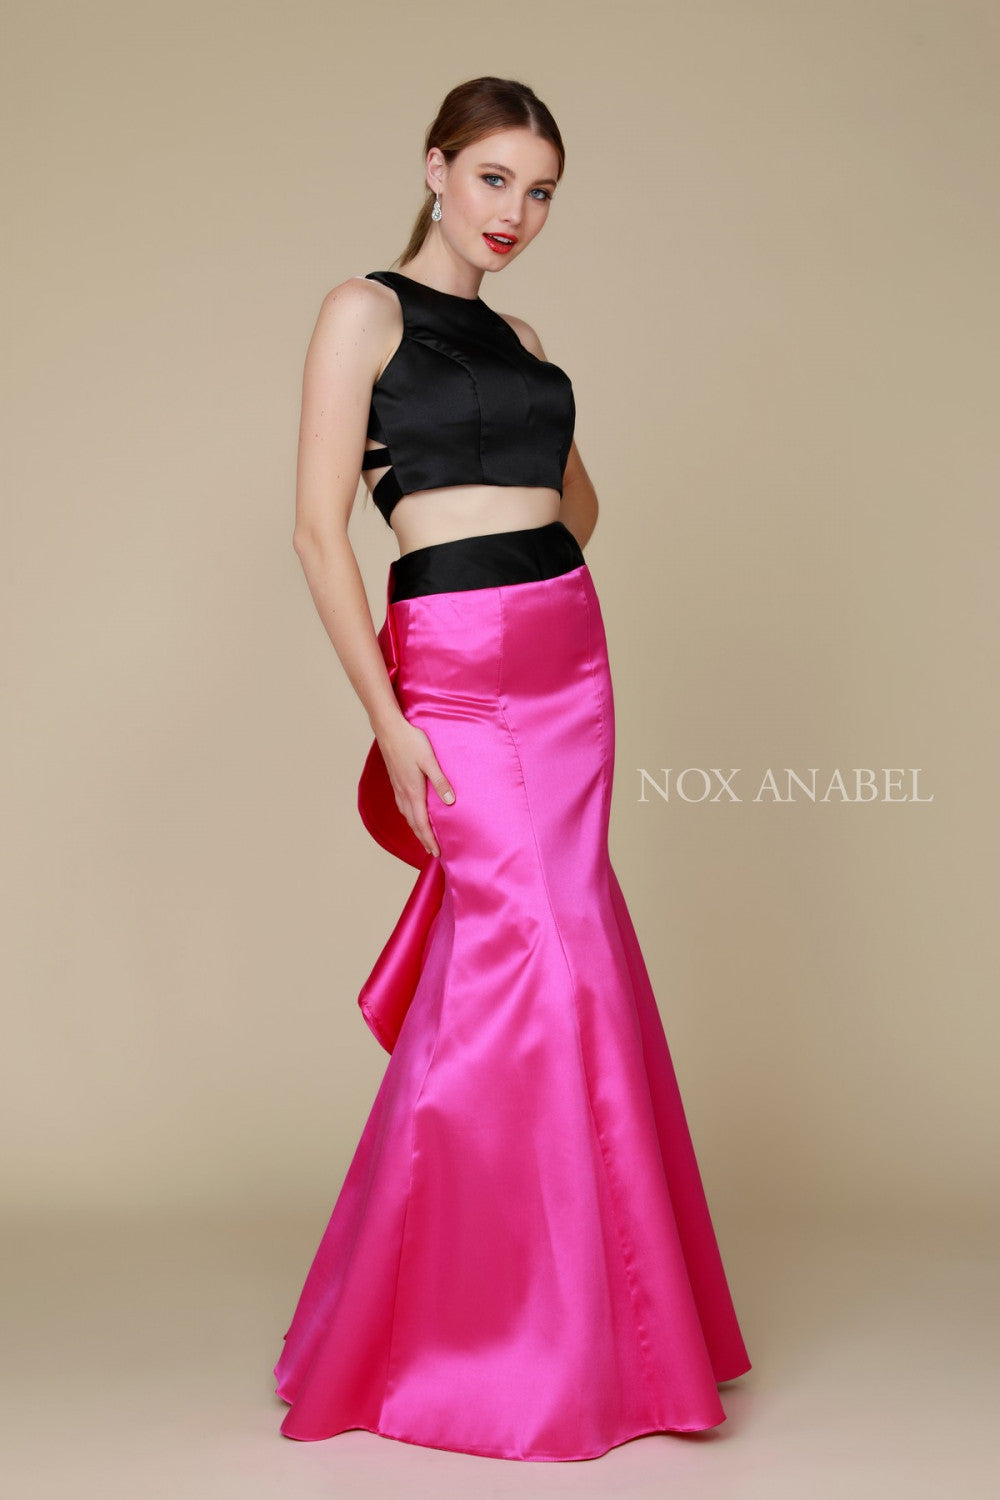 Two Piece High Neck Crop Top Prom Dress - The Dress Outlet Fuchsia